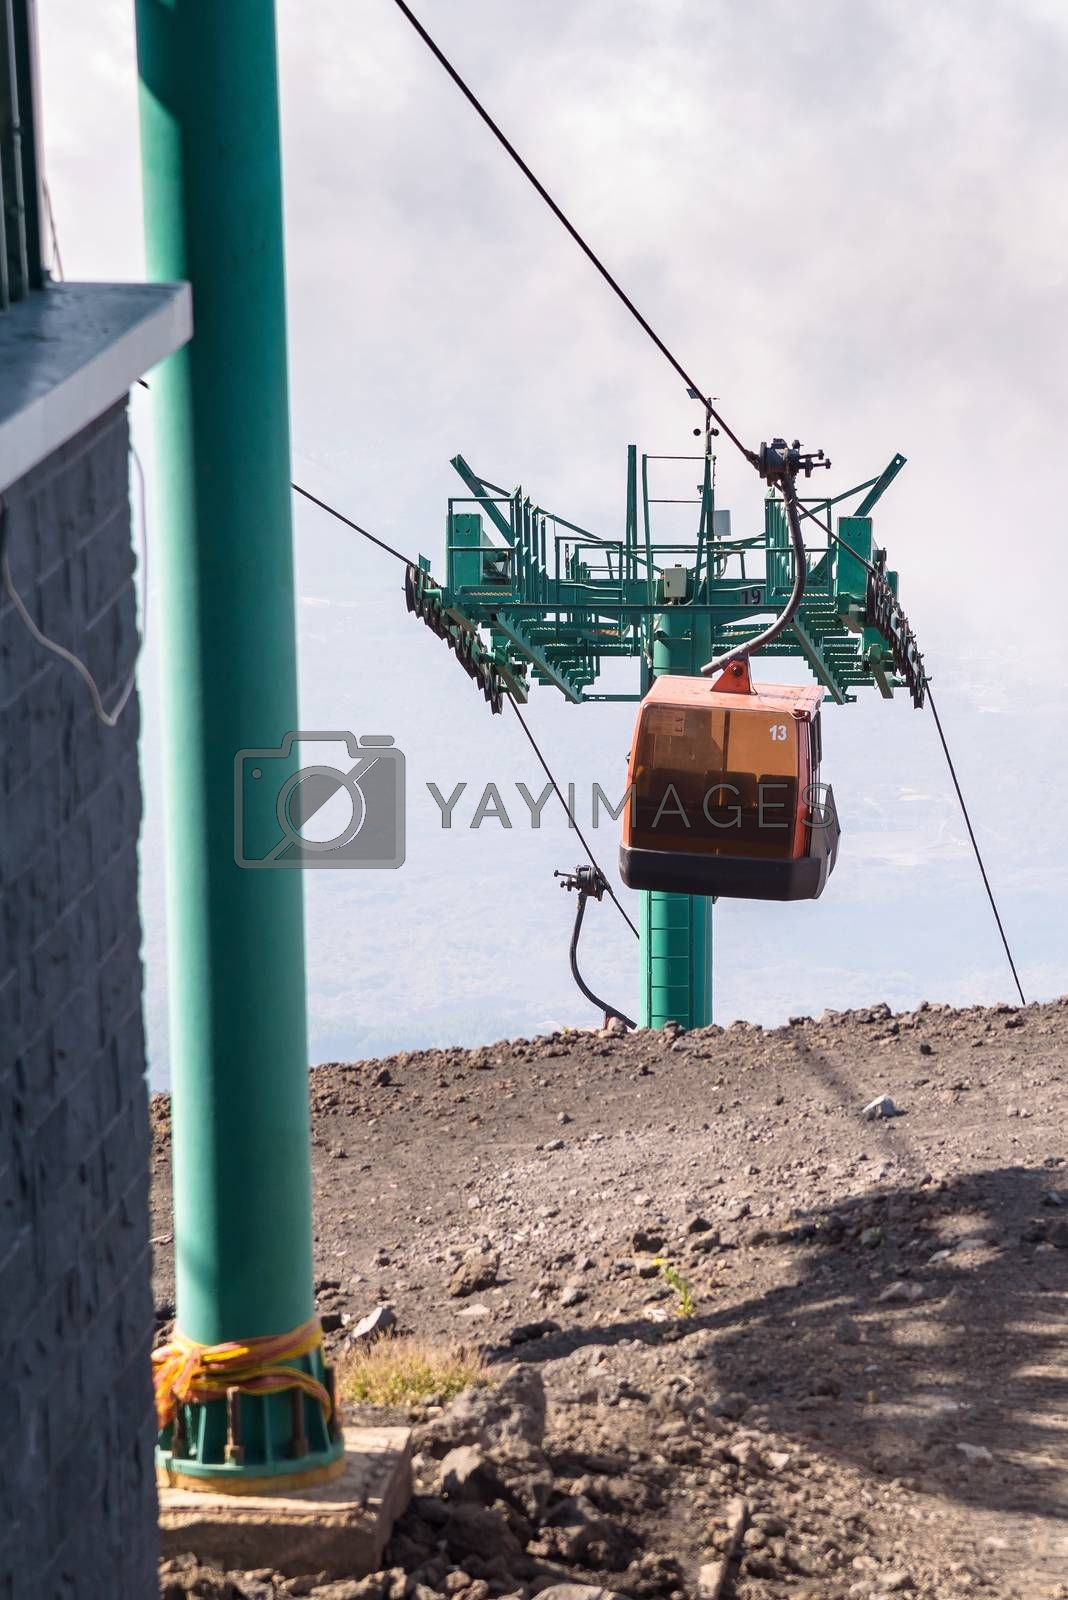 Upper station of the cable car on Mount Etna, Sicily, Italy